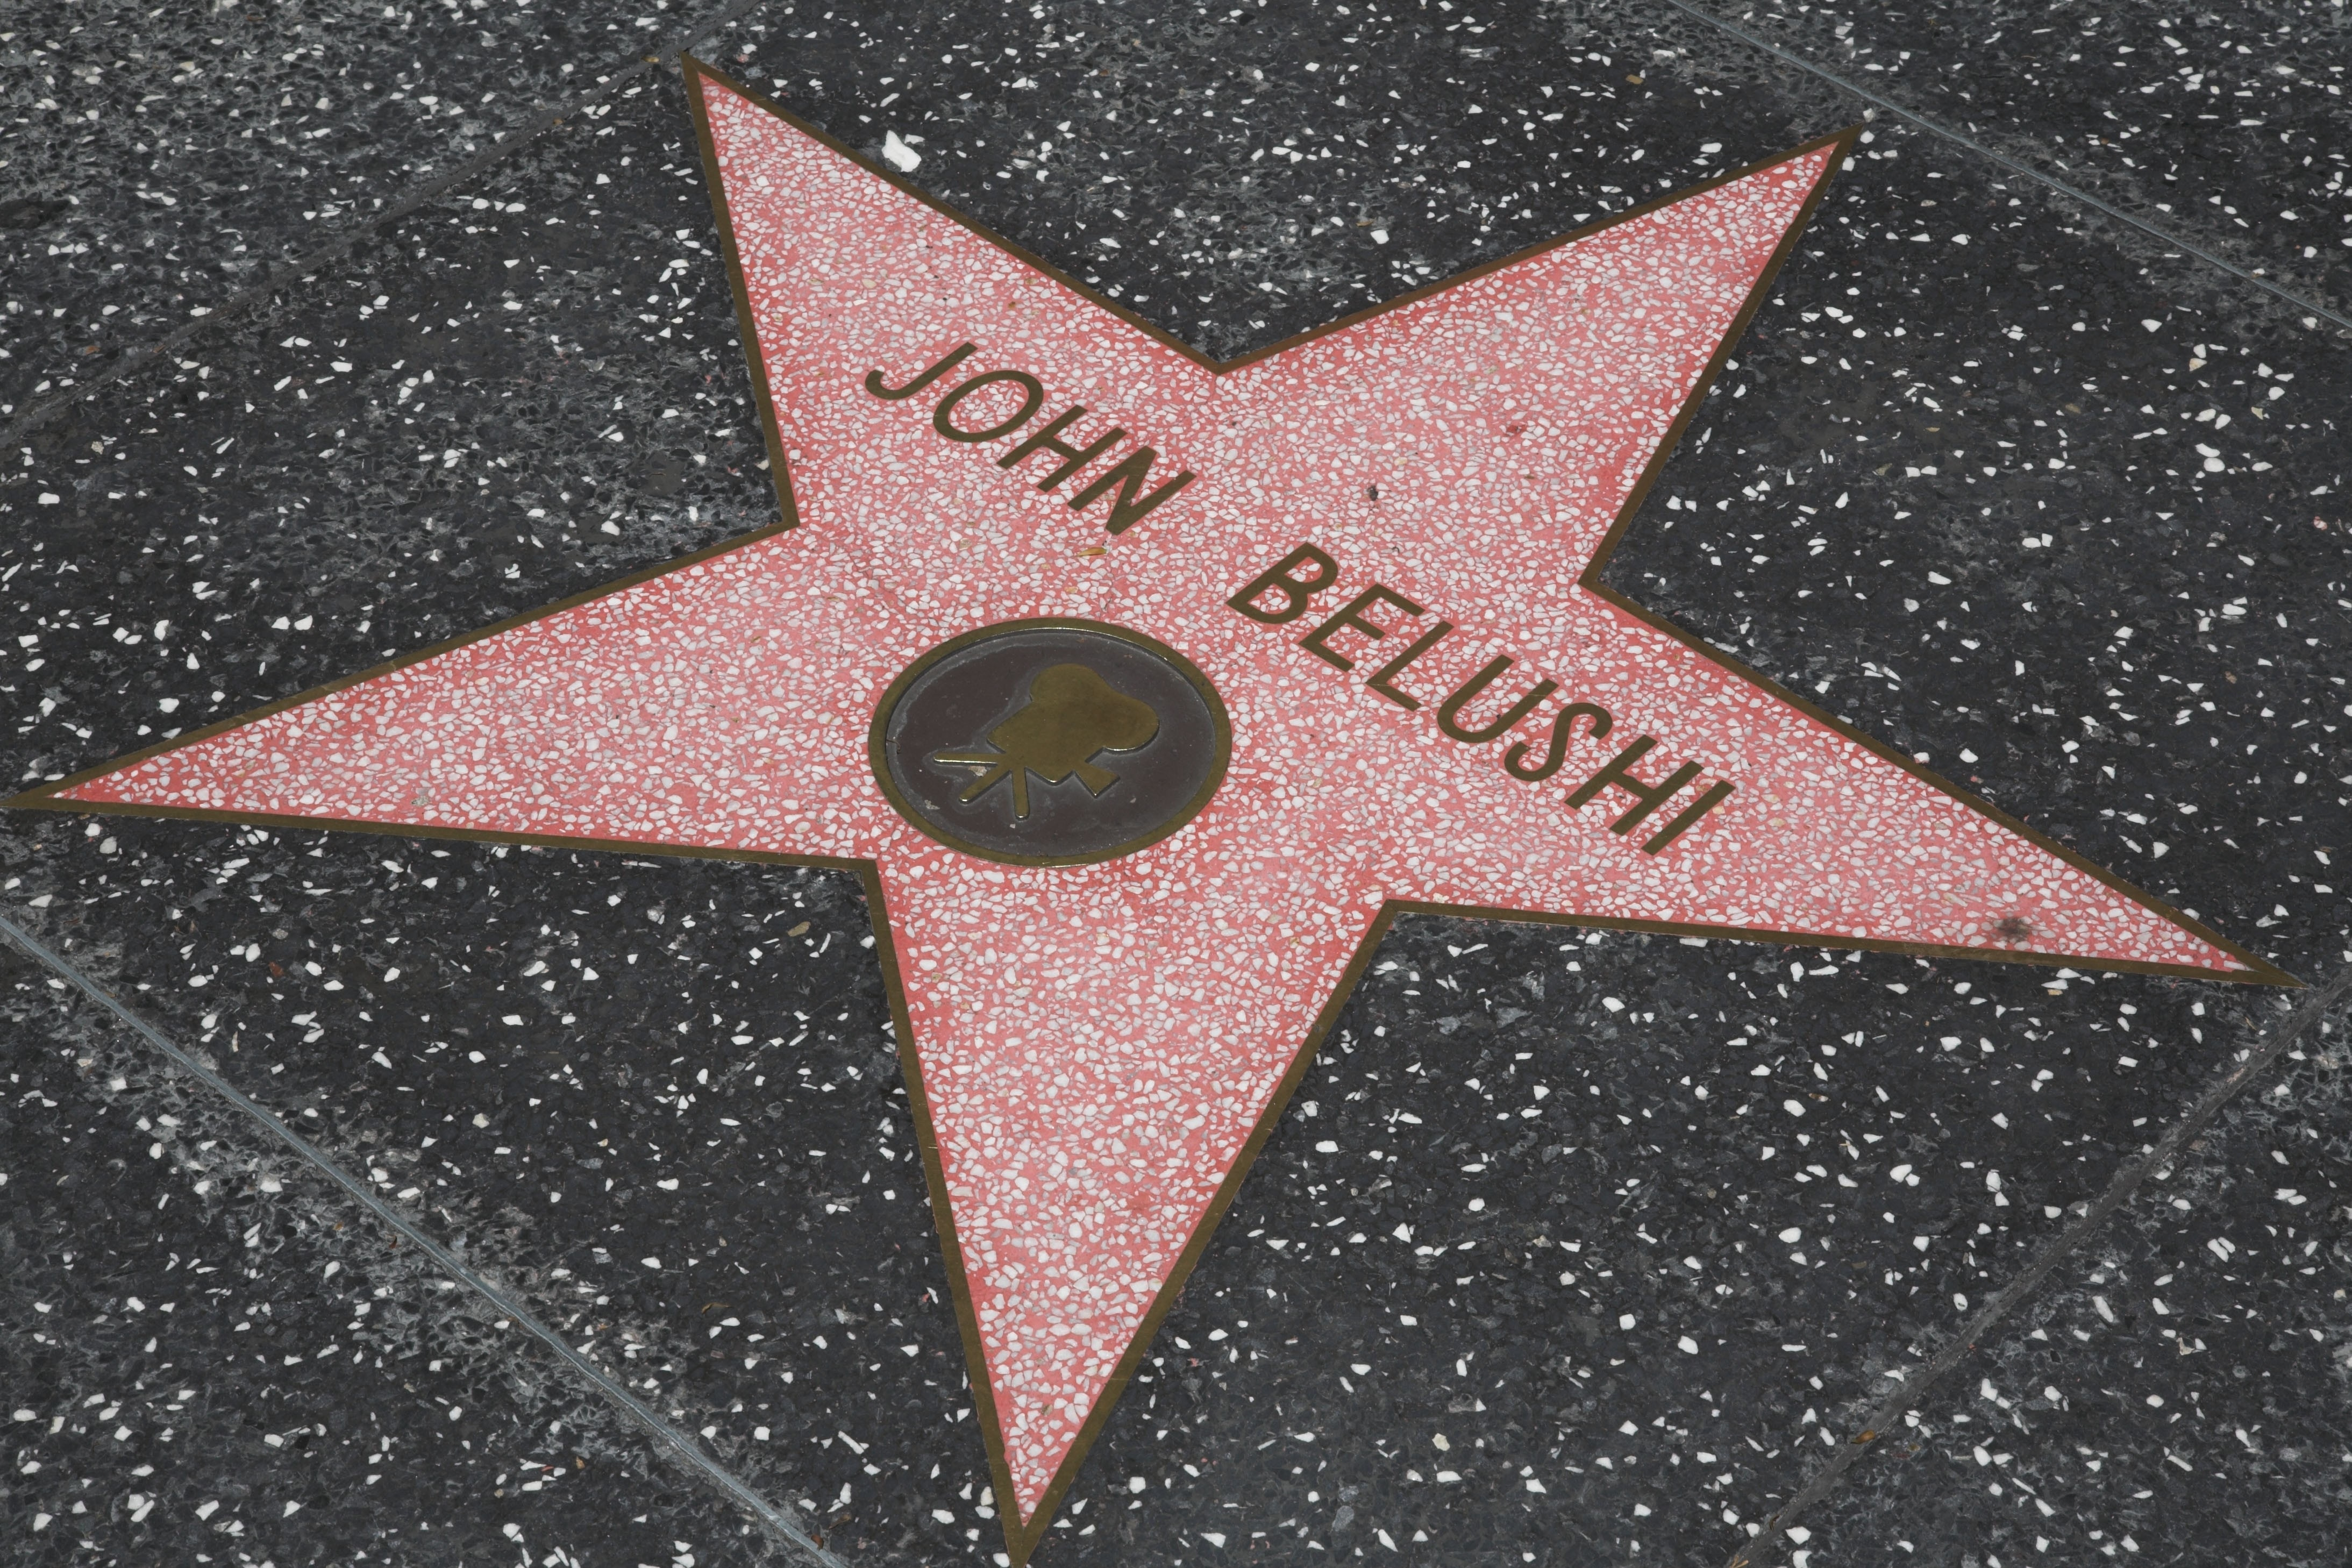 1565337865084_Hollywood.jpg - Hollywood Boulevard, Walk of fame